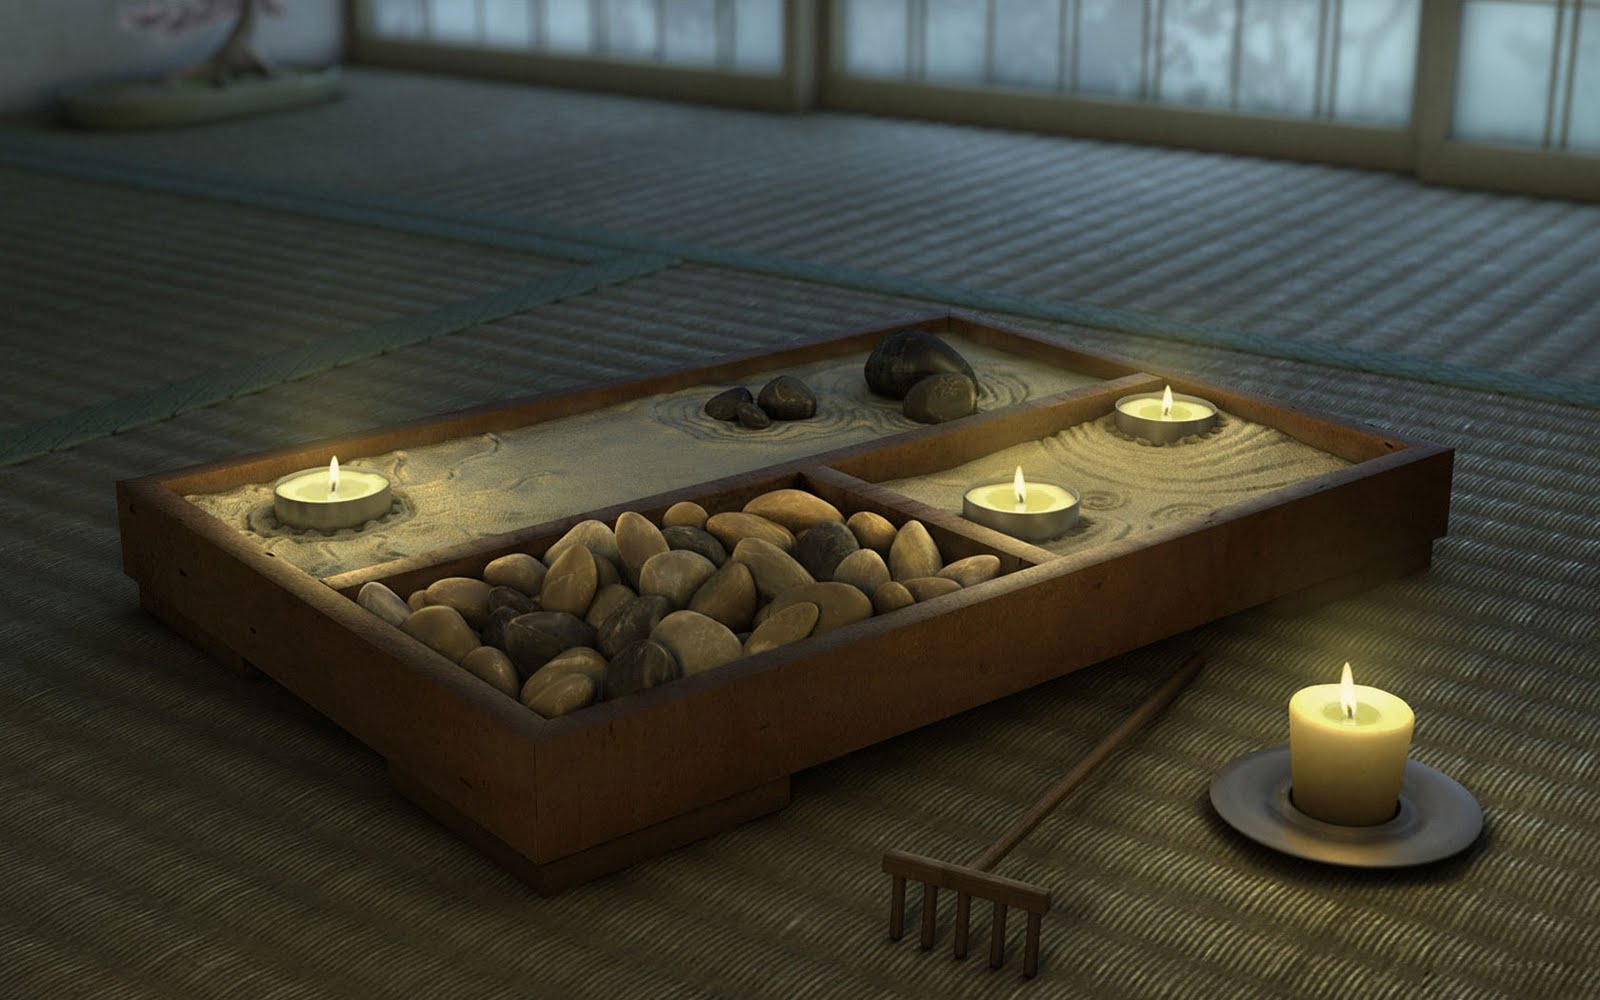 Table Top Zen Garden Top 5 Best Desktop Zen Gardens List My Zen Decor